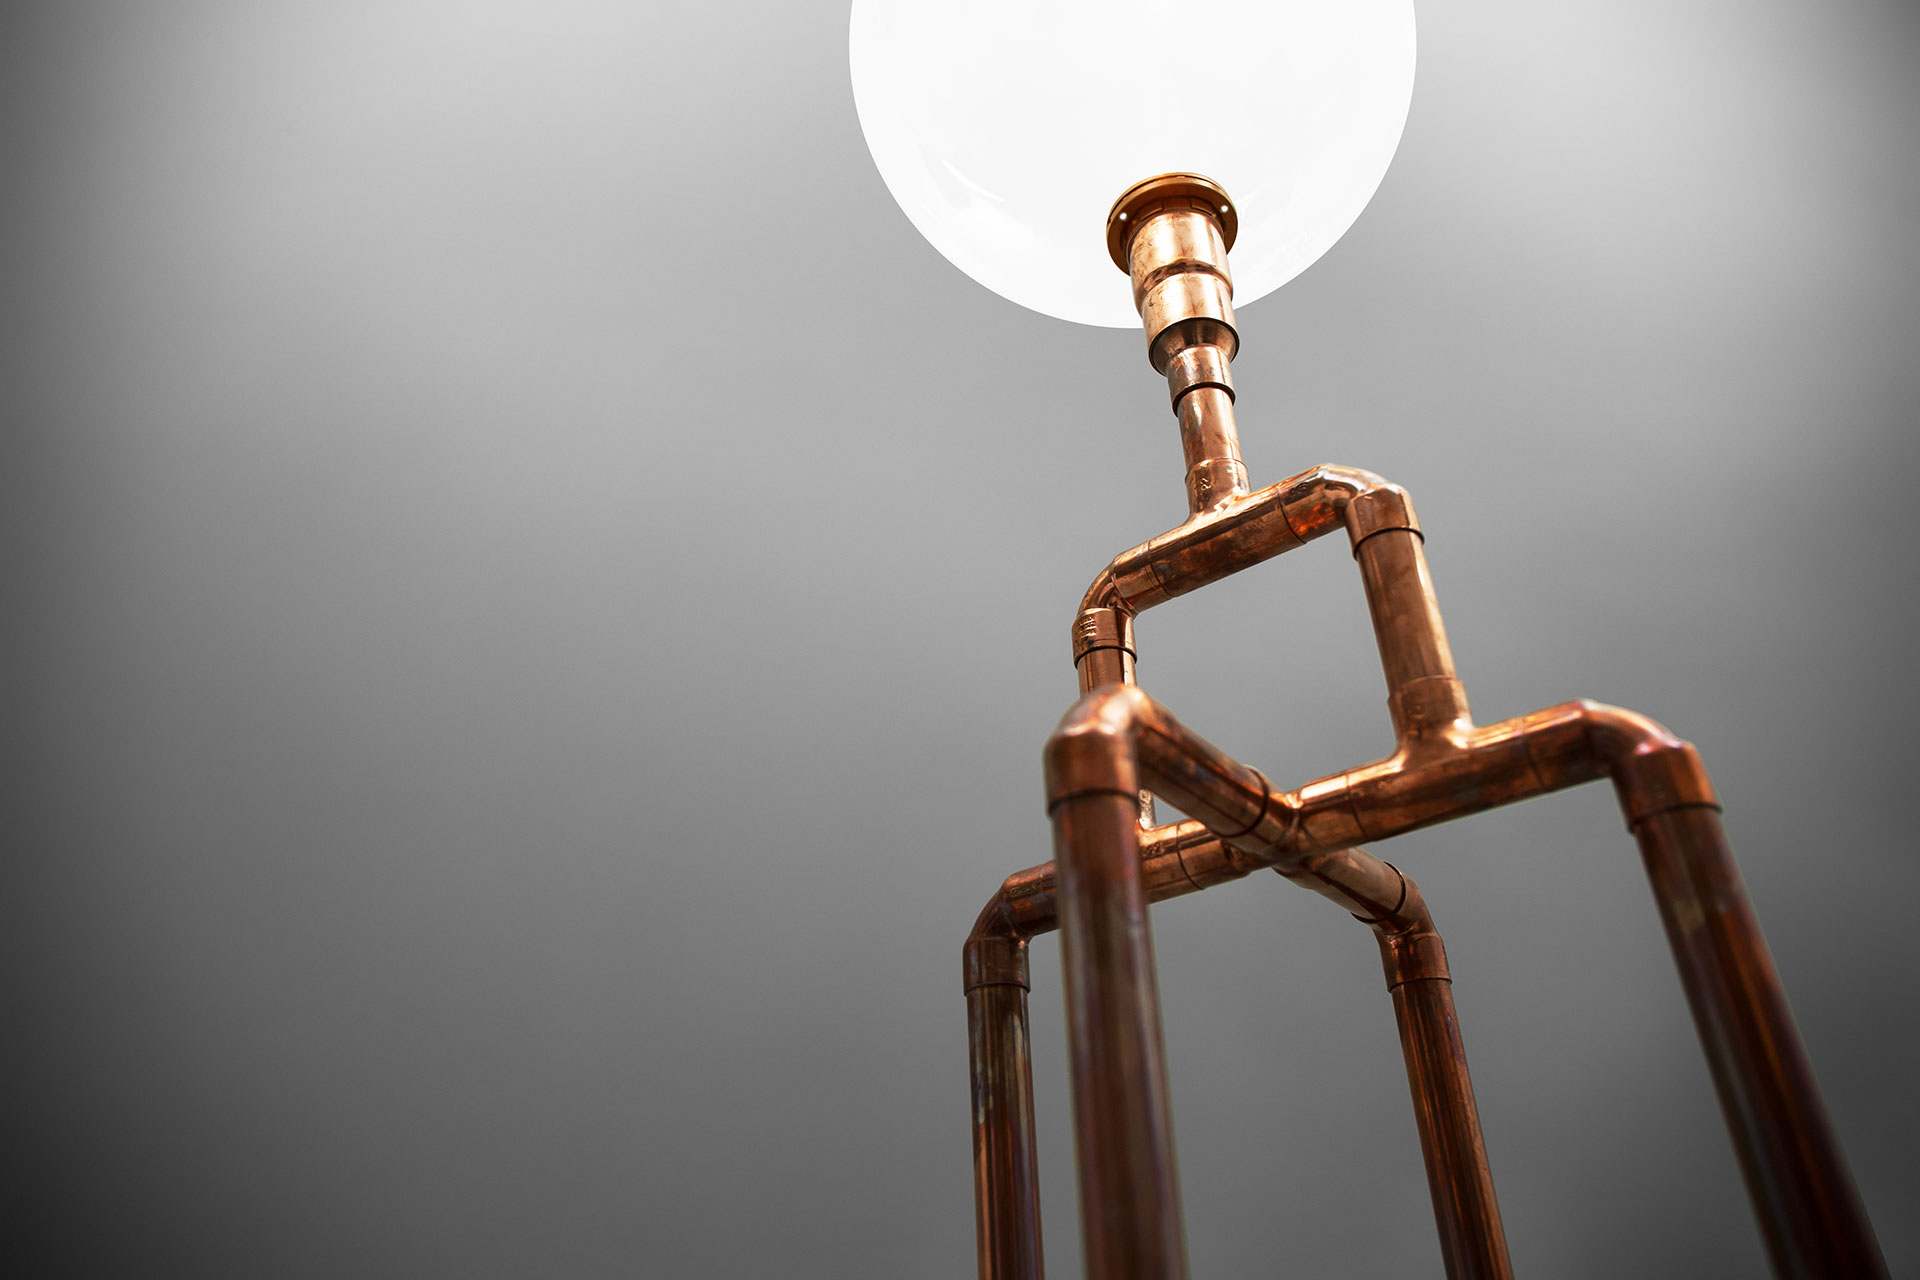 Cool industrial floor lamp made of copper pipes inspired by Art Deco era